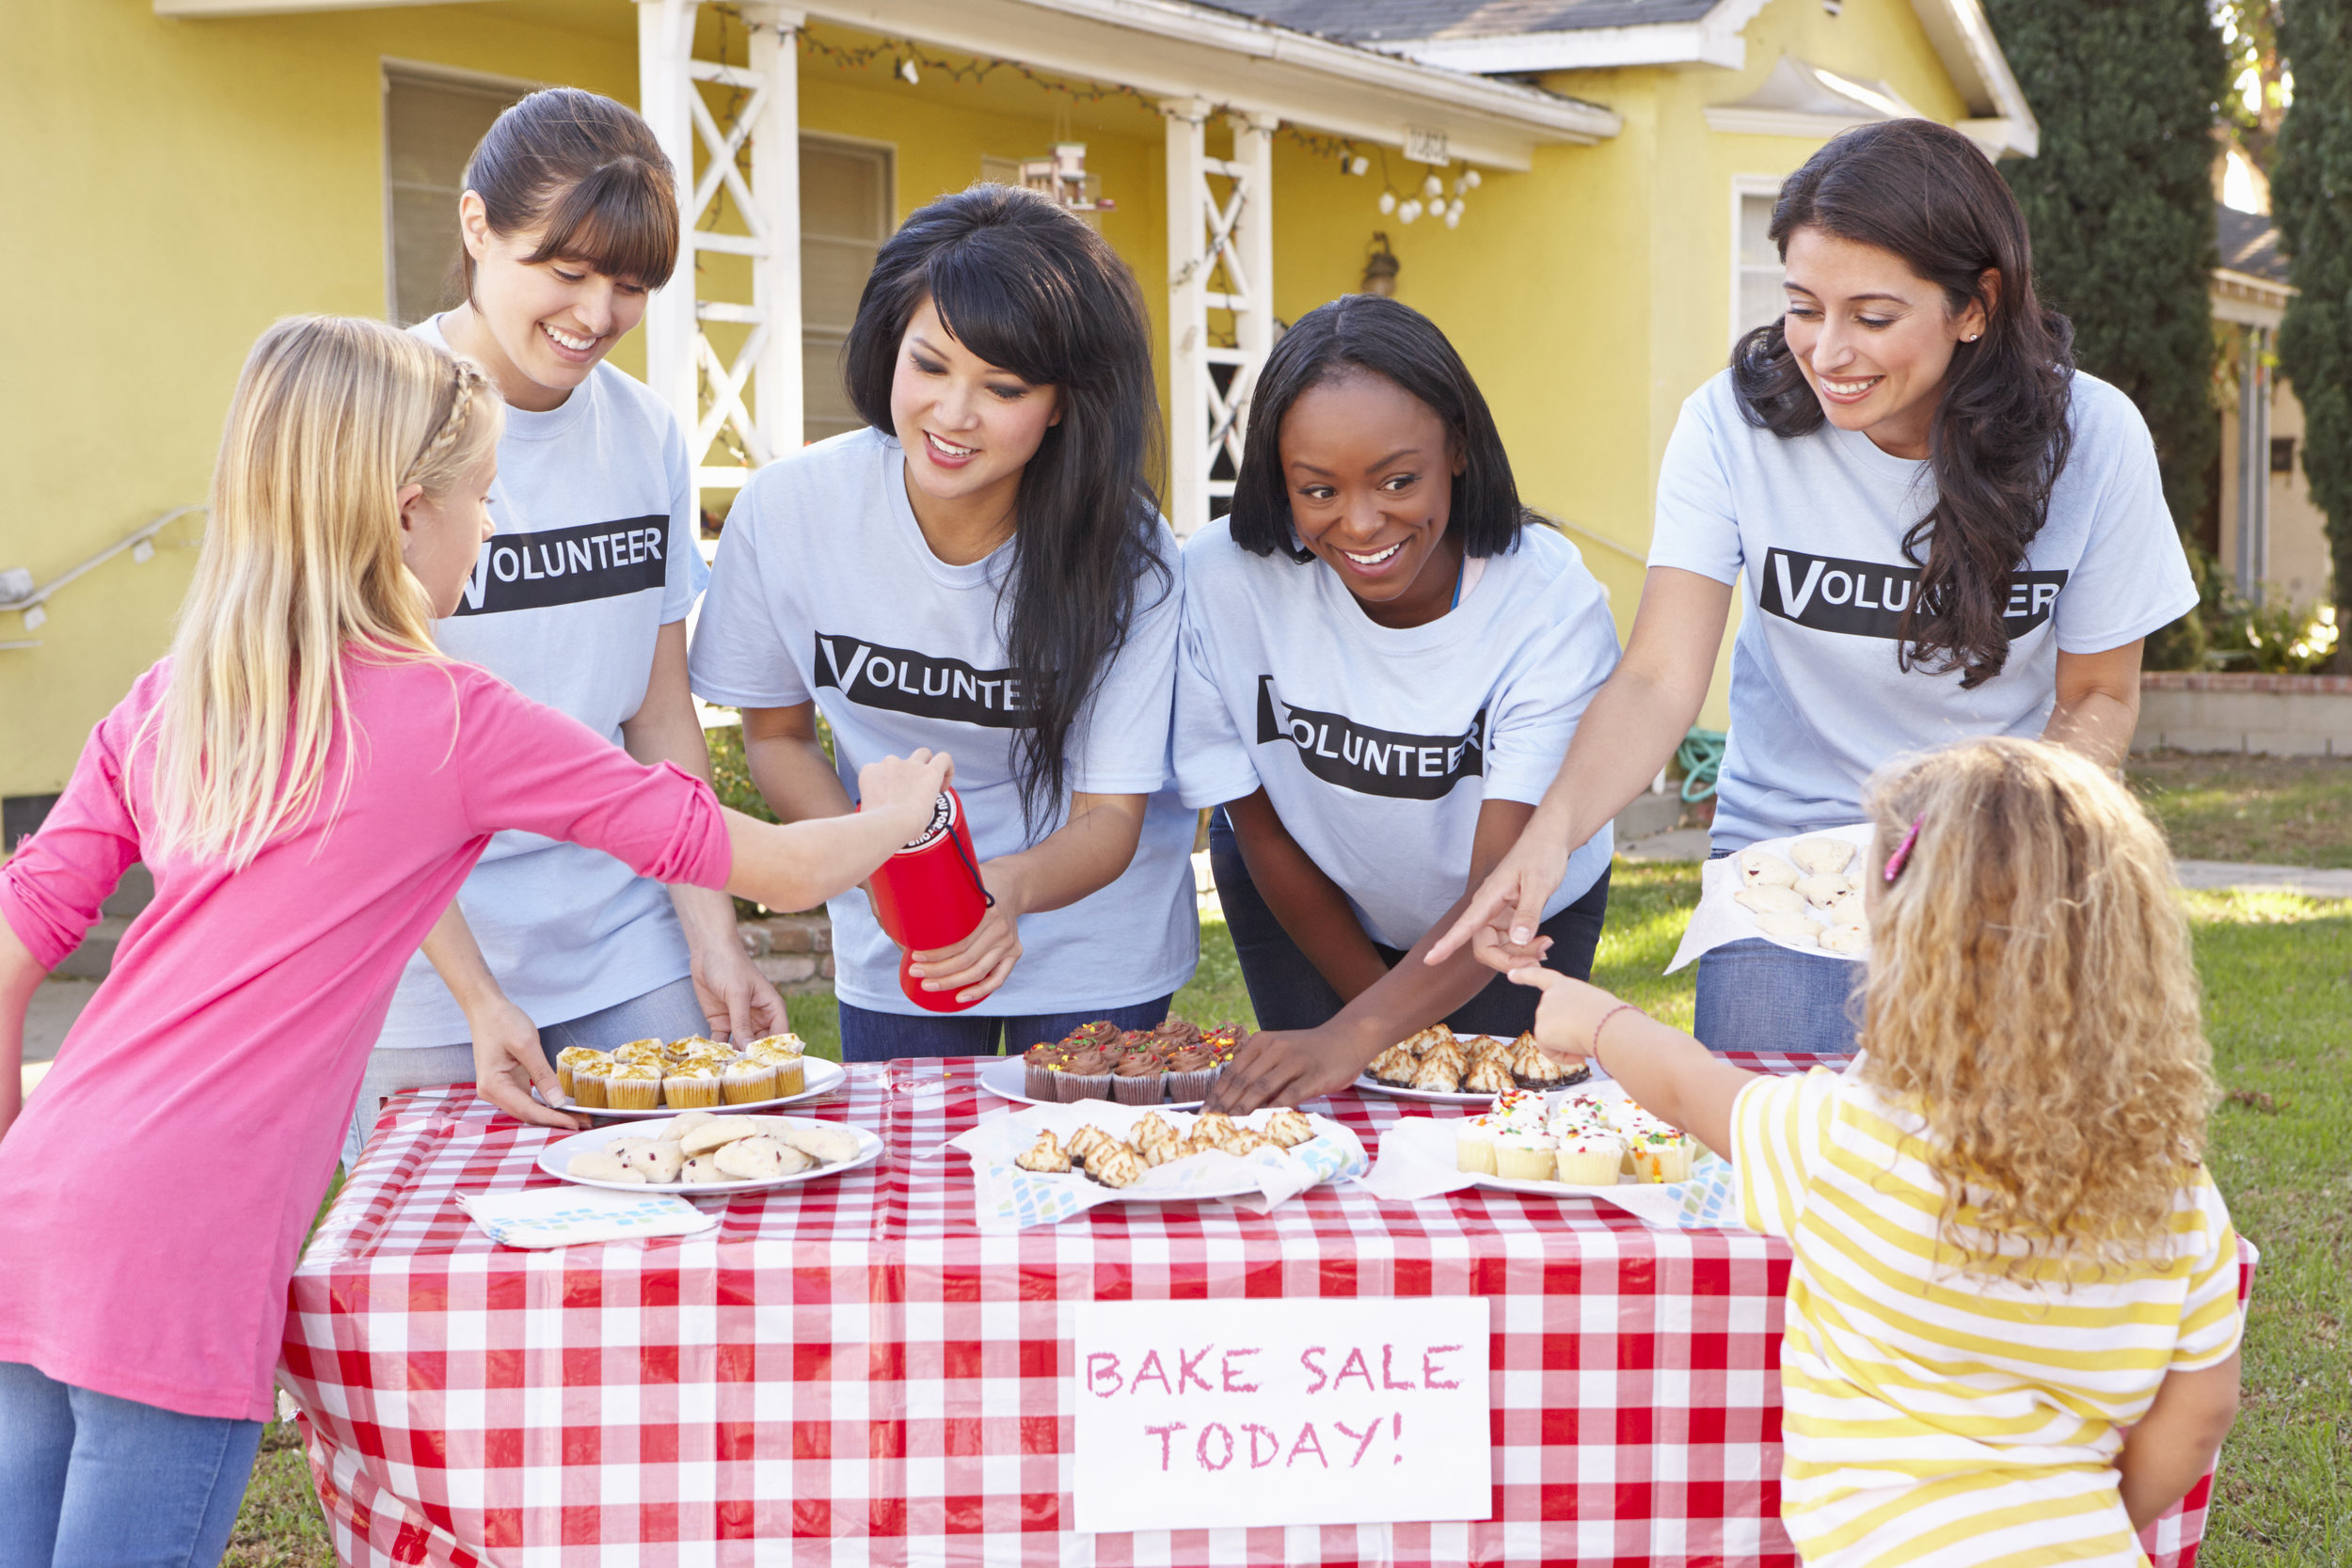 women-and-children-running-charity-bake-sale-PN8X7UJ.jpg